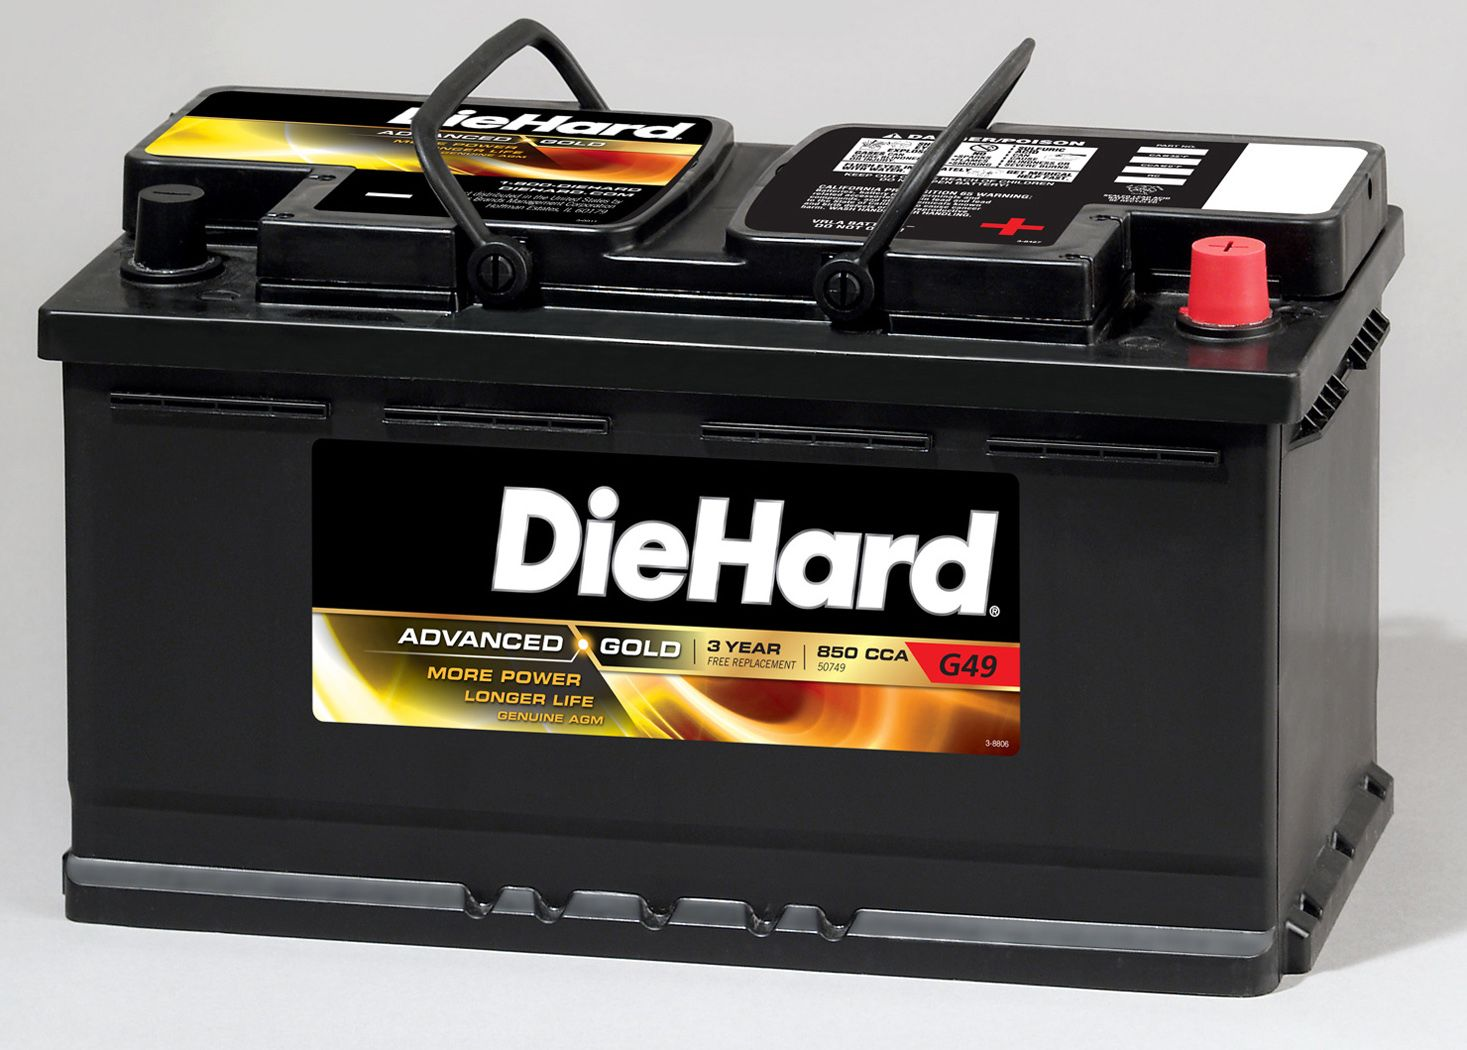 medium resolution of diehard gold agm automotive battery group size ep 49 price with exchange